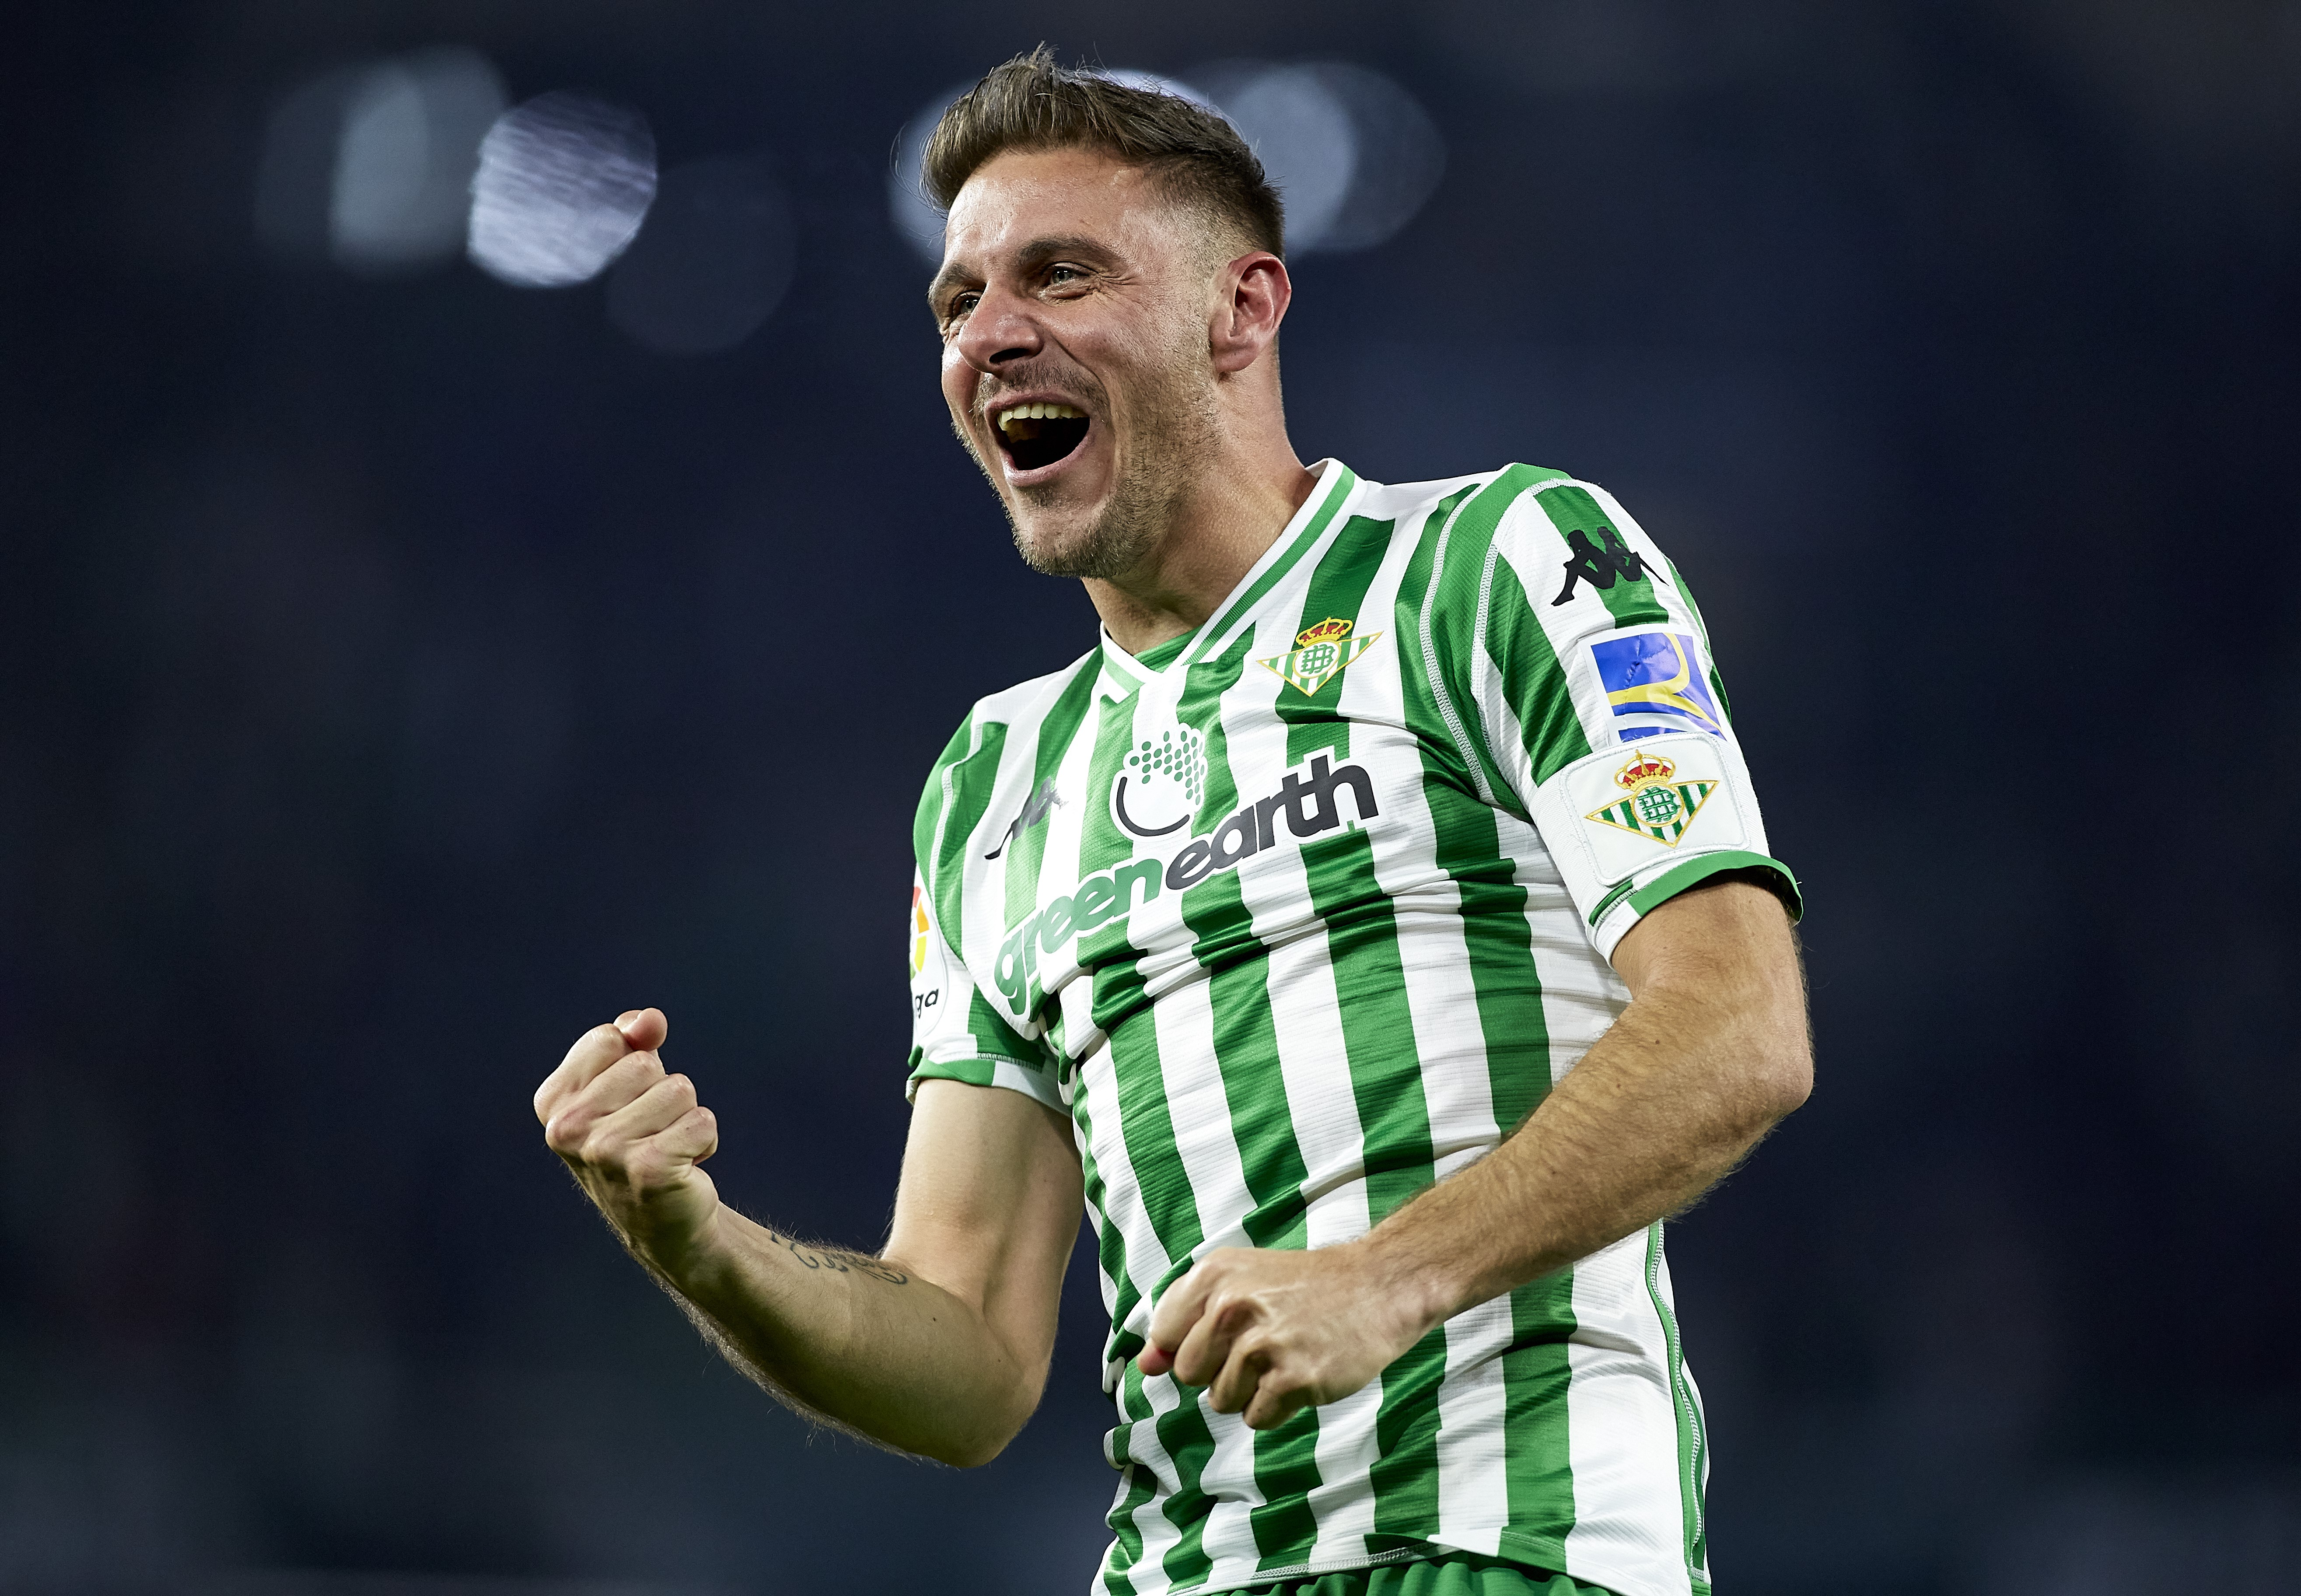 Joaquin Sanchez of Real Betis celebrates after scoring his team's second goal during the Copa del Rey Semi Final first leg match between Real Betis and Valencia CF at Estadio Benito Villamarin on February 07, 2019 in Seville, Spain.